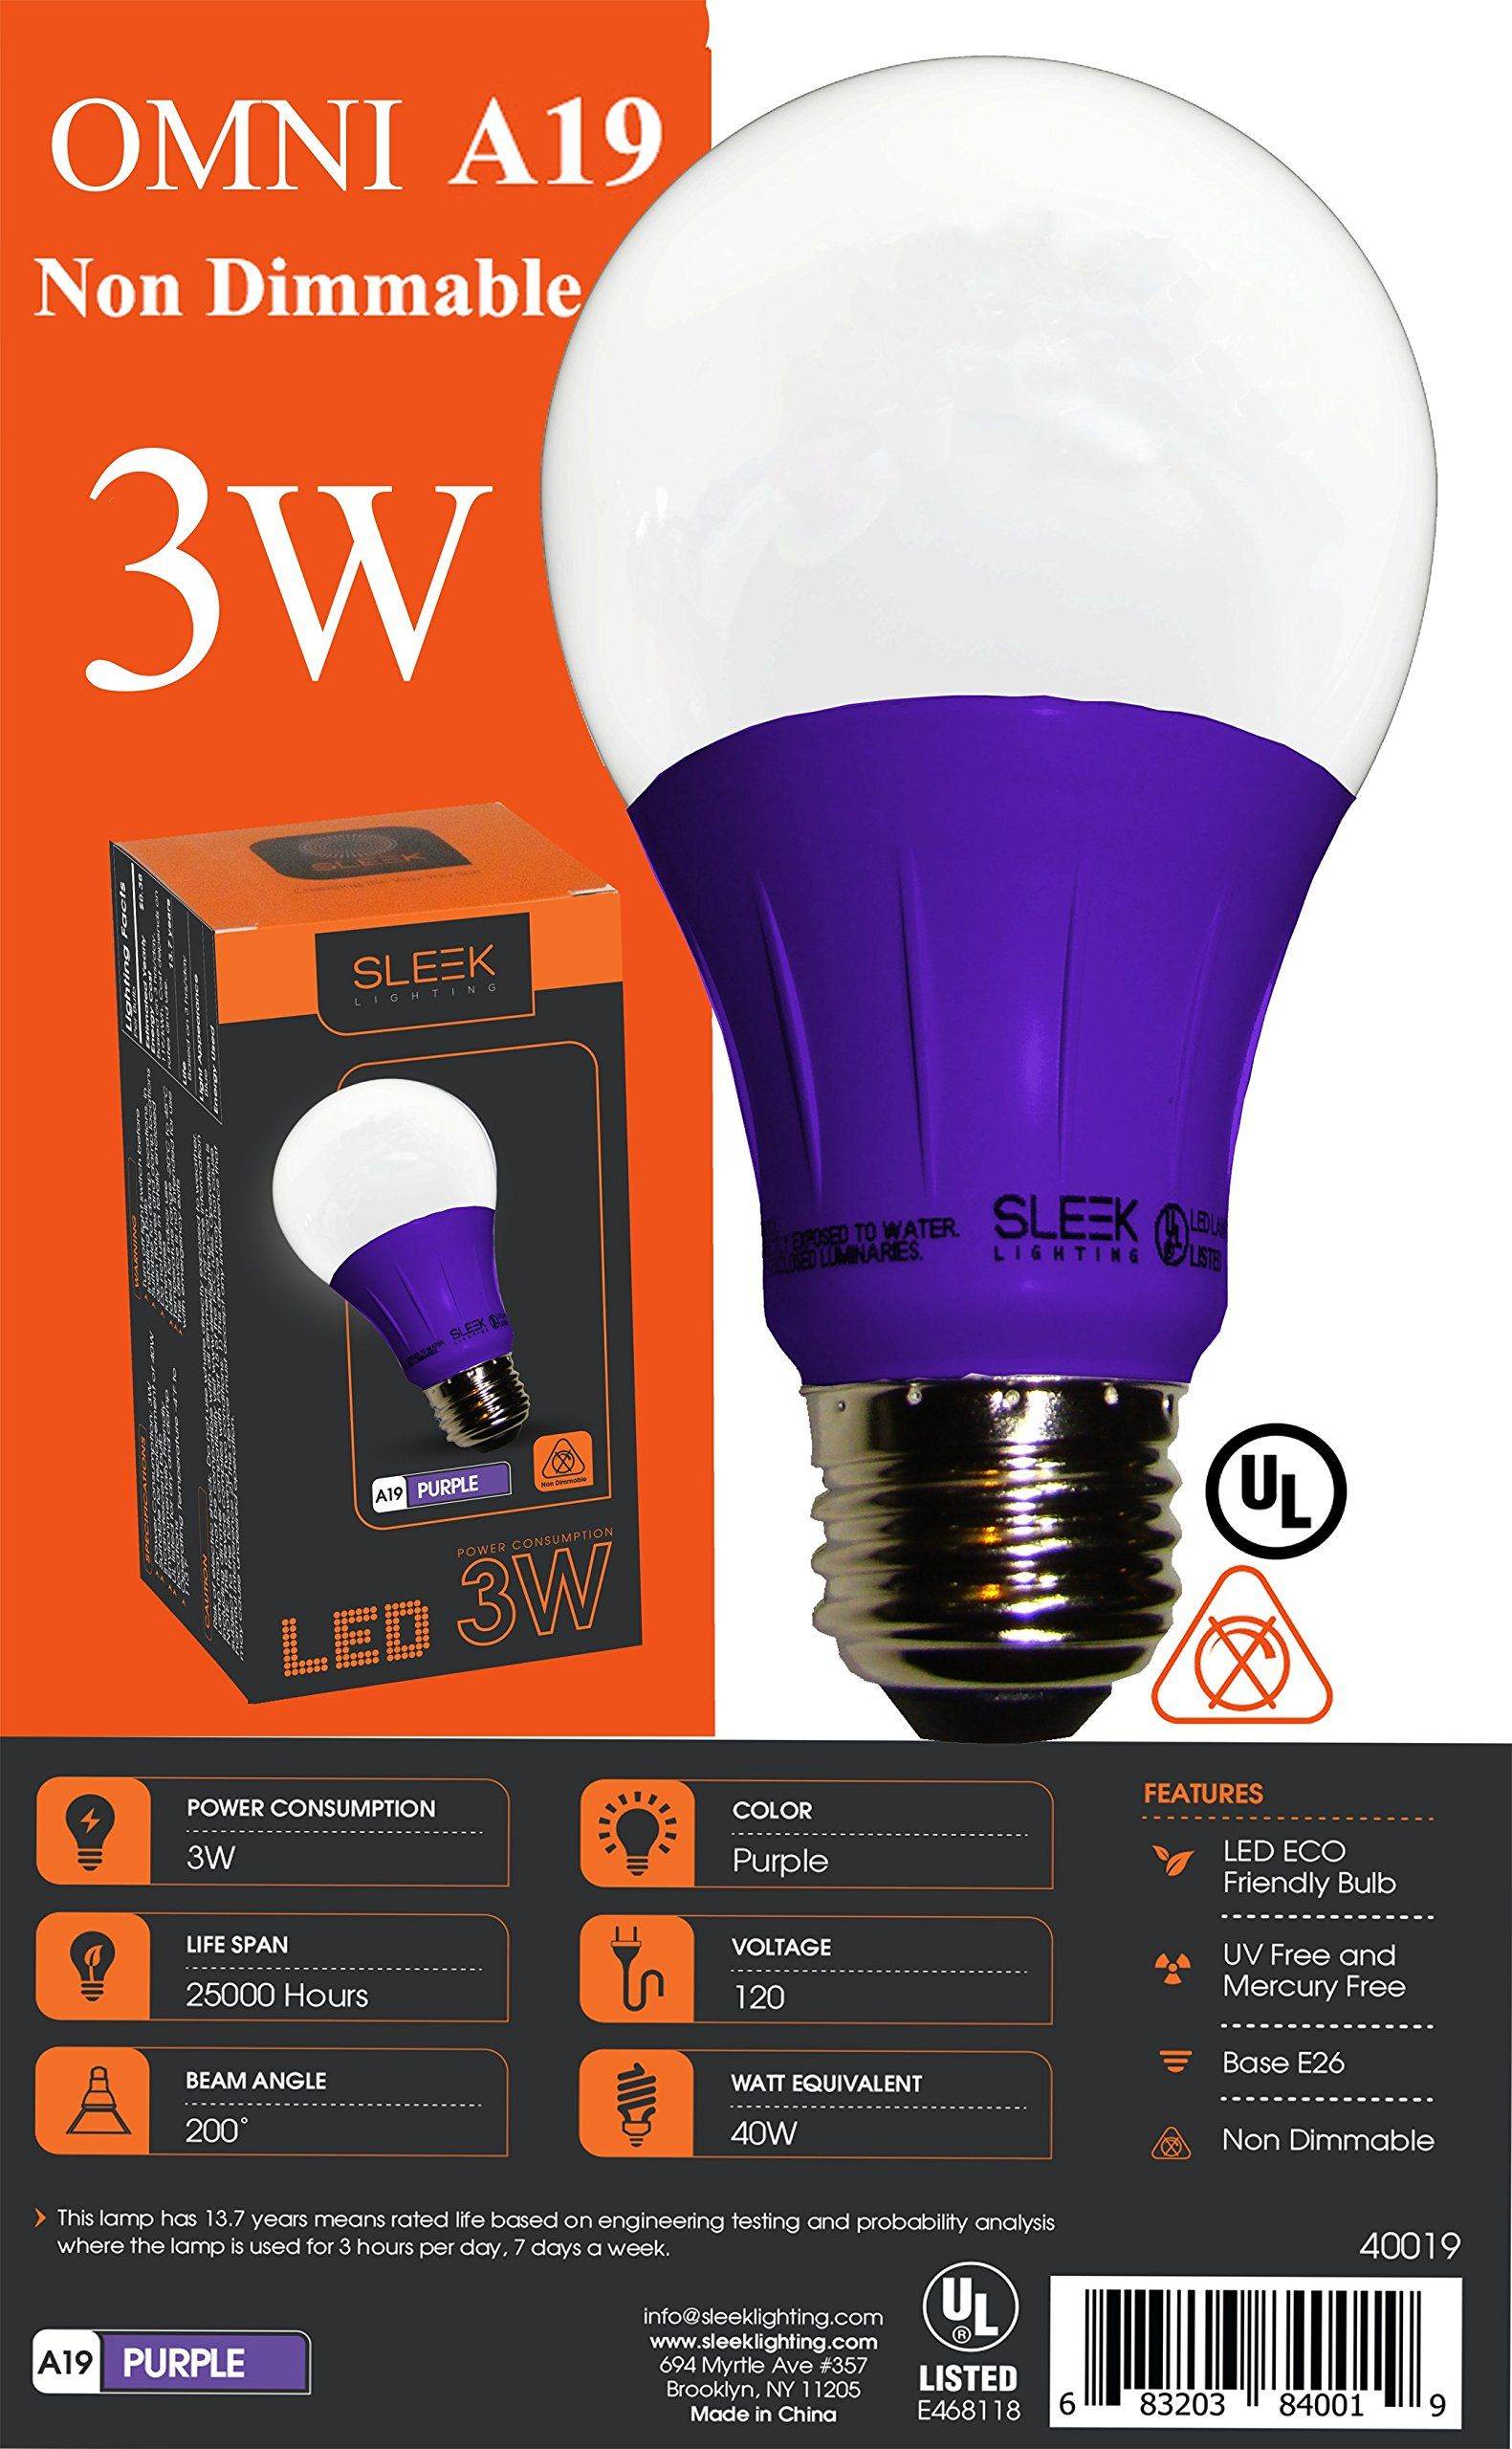 Sleeklighting Led A19 Purple Light Bulb 120 Volt 3watt Energy Saving Medium Base Ullisted Led Bulb Lasts More Than 20000 Hours 2pa In 2020 Light Bulb Bulb Led Bulb